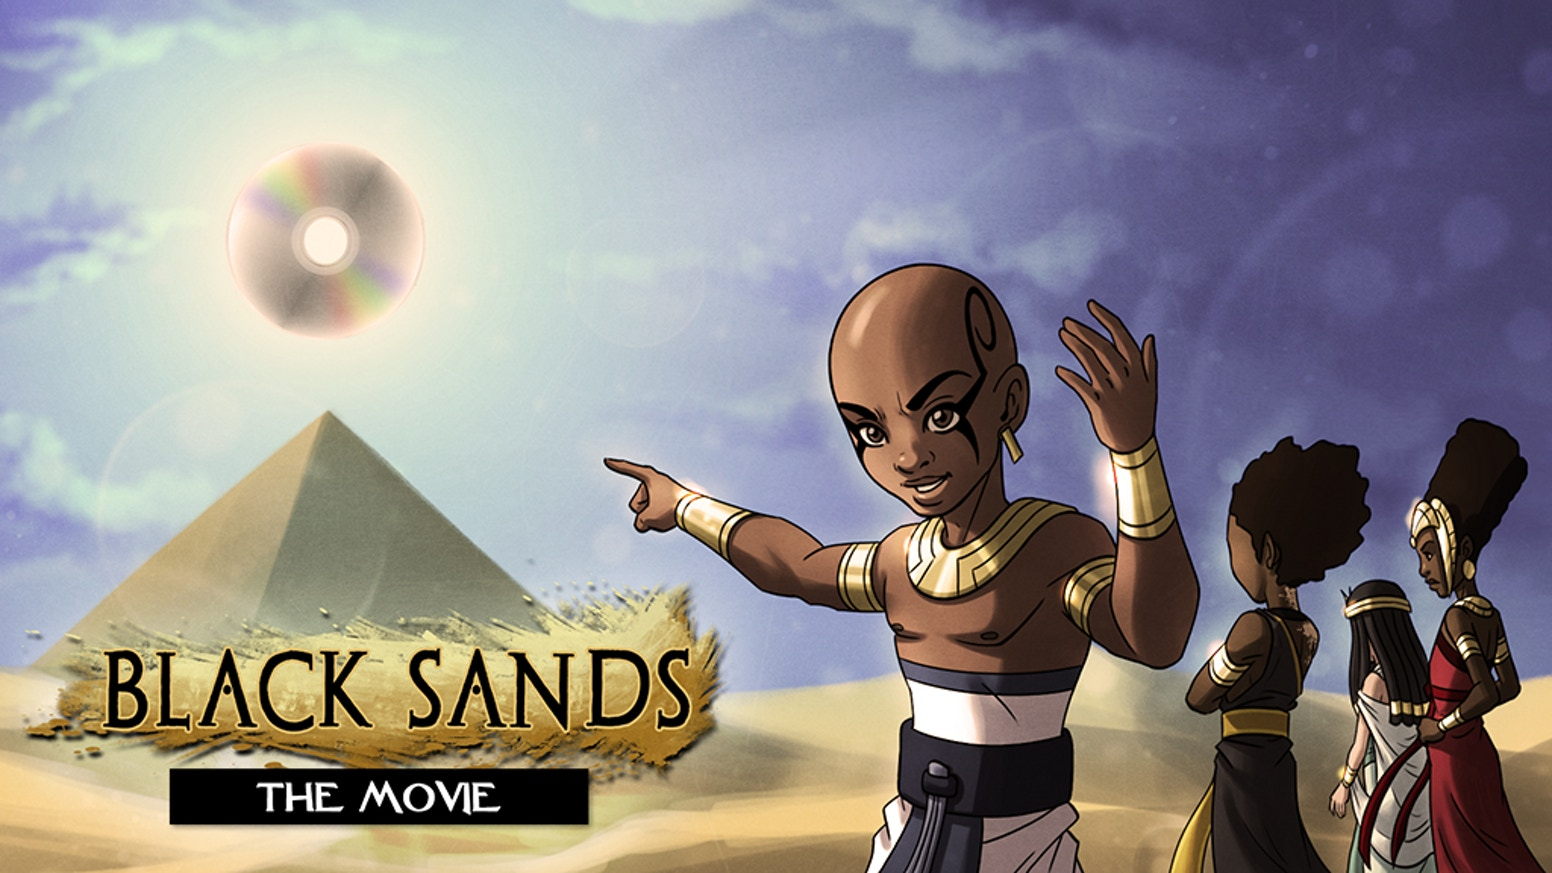 Black Sands - An Animated Pilot Based Off The Award Winning Black Sands Universe. Subscribe to help this company grow below!